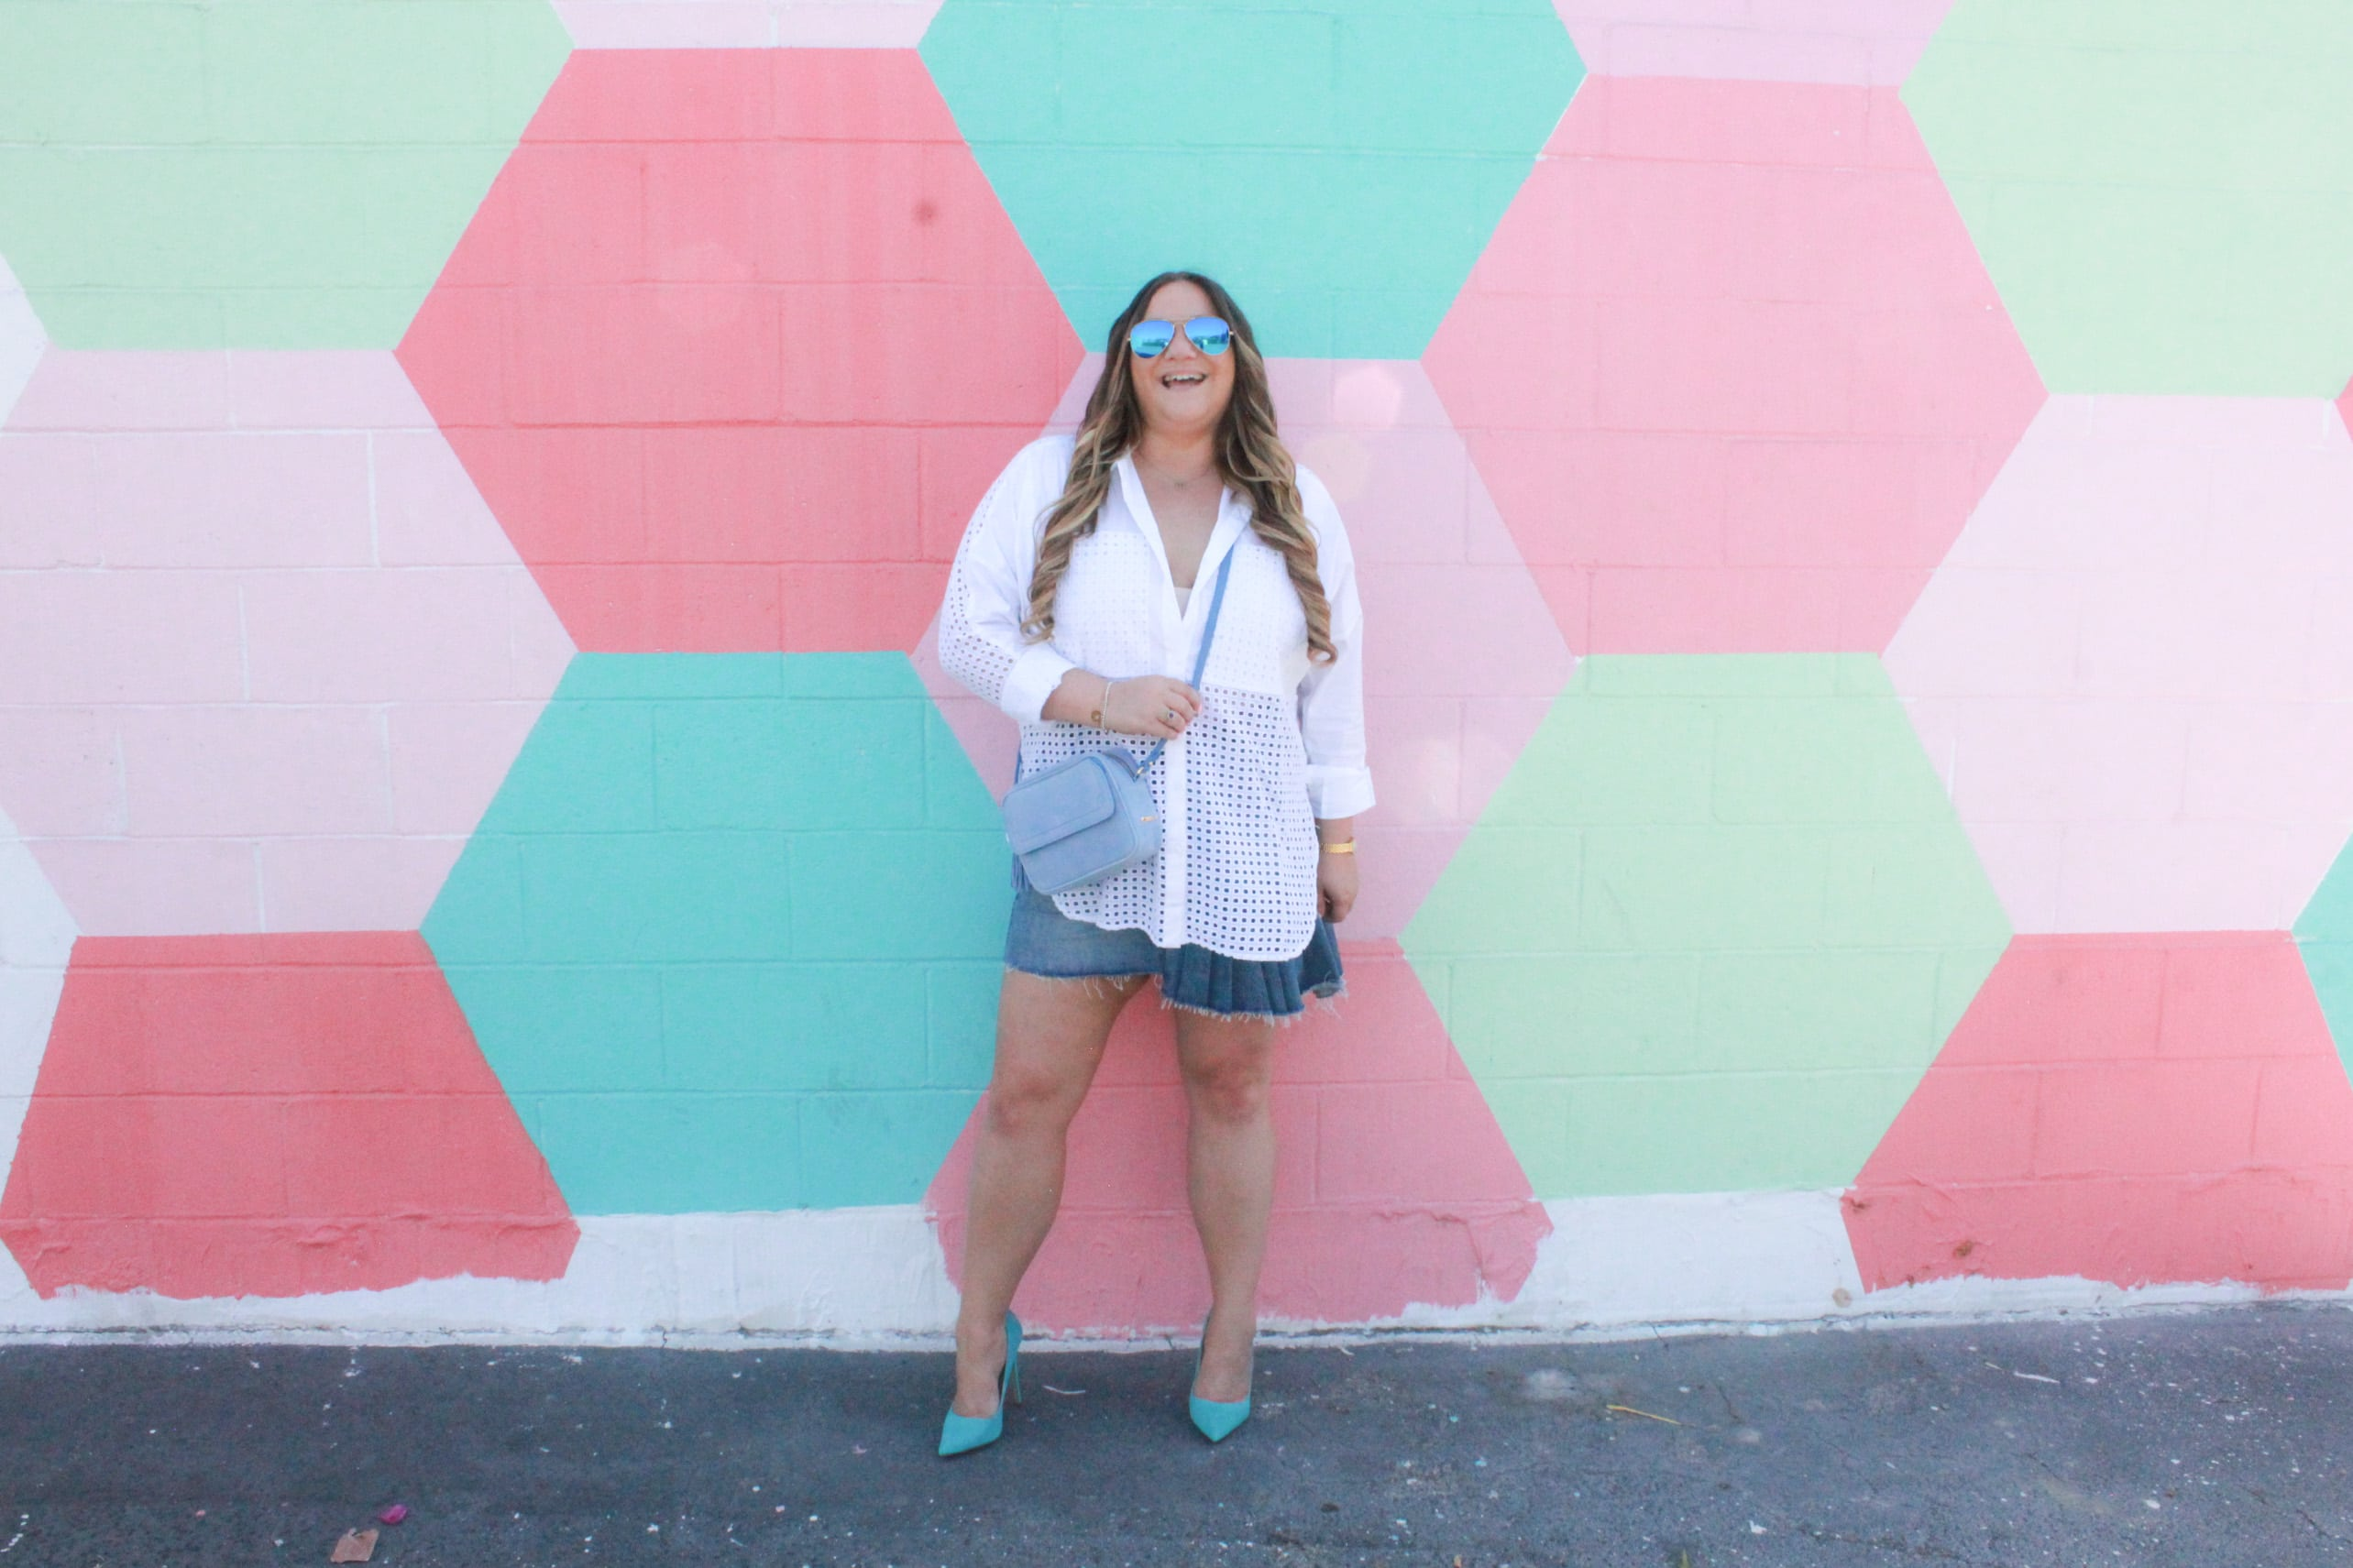 missyonmadison, missyonmadison blog, bloglovin, fashion blog, fashion blogger, style blog, style blogger, fashion inspo, outfit inspo, habitual, habitual denim skirt, perforated blouse, white button down blouse, white button down shirt, denim skirt, la blogger, style diaries, ami clubwear, ami clubwear heels, teal heels, teal pumps, blue pumps, blue heels, summer outfit inspo, gigi new york, gigi new york crossbody bag,